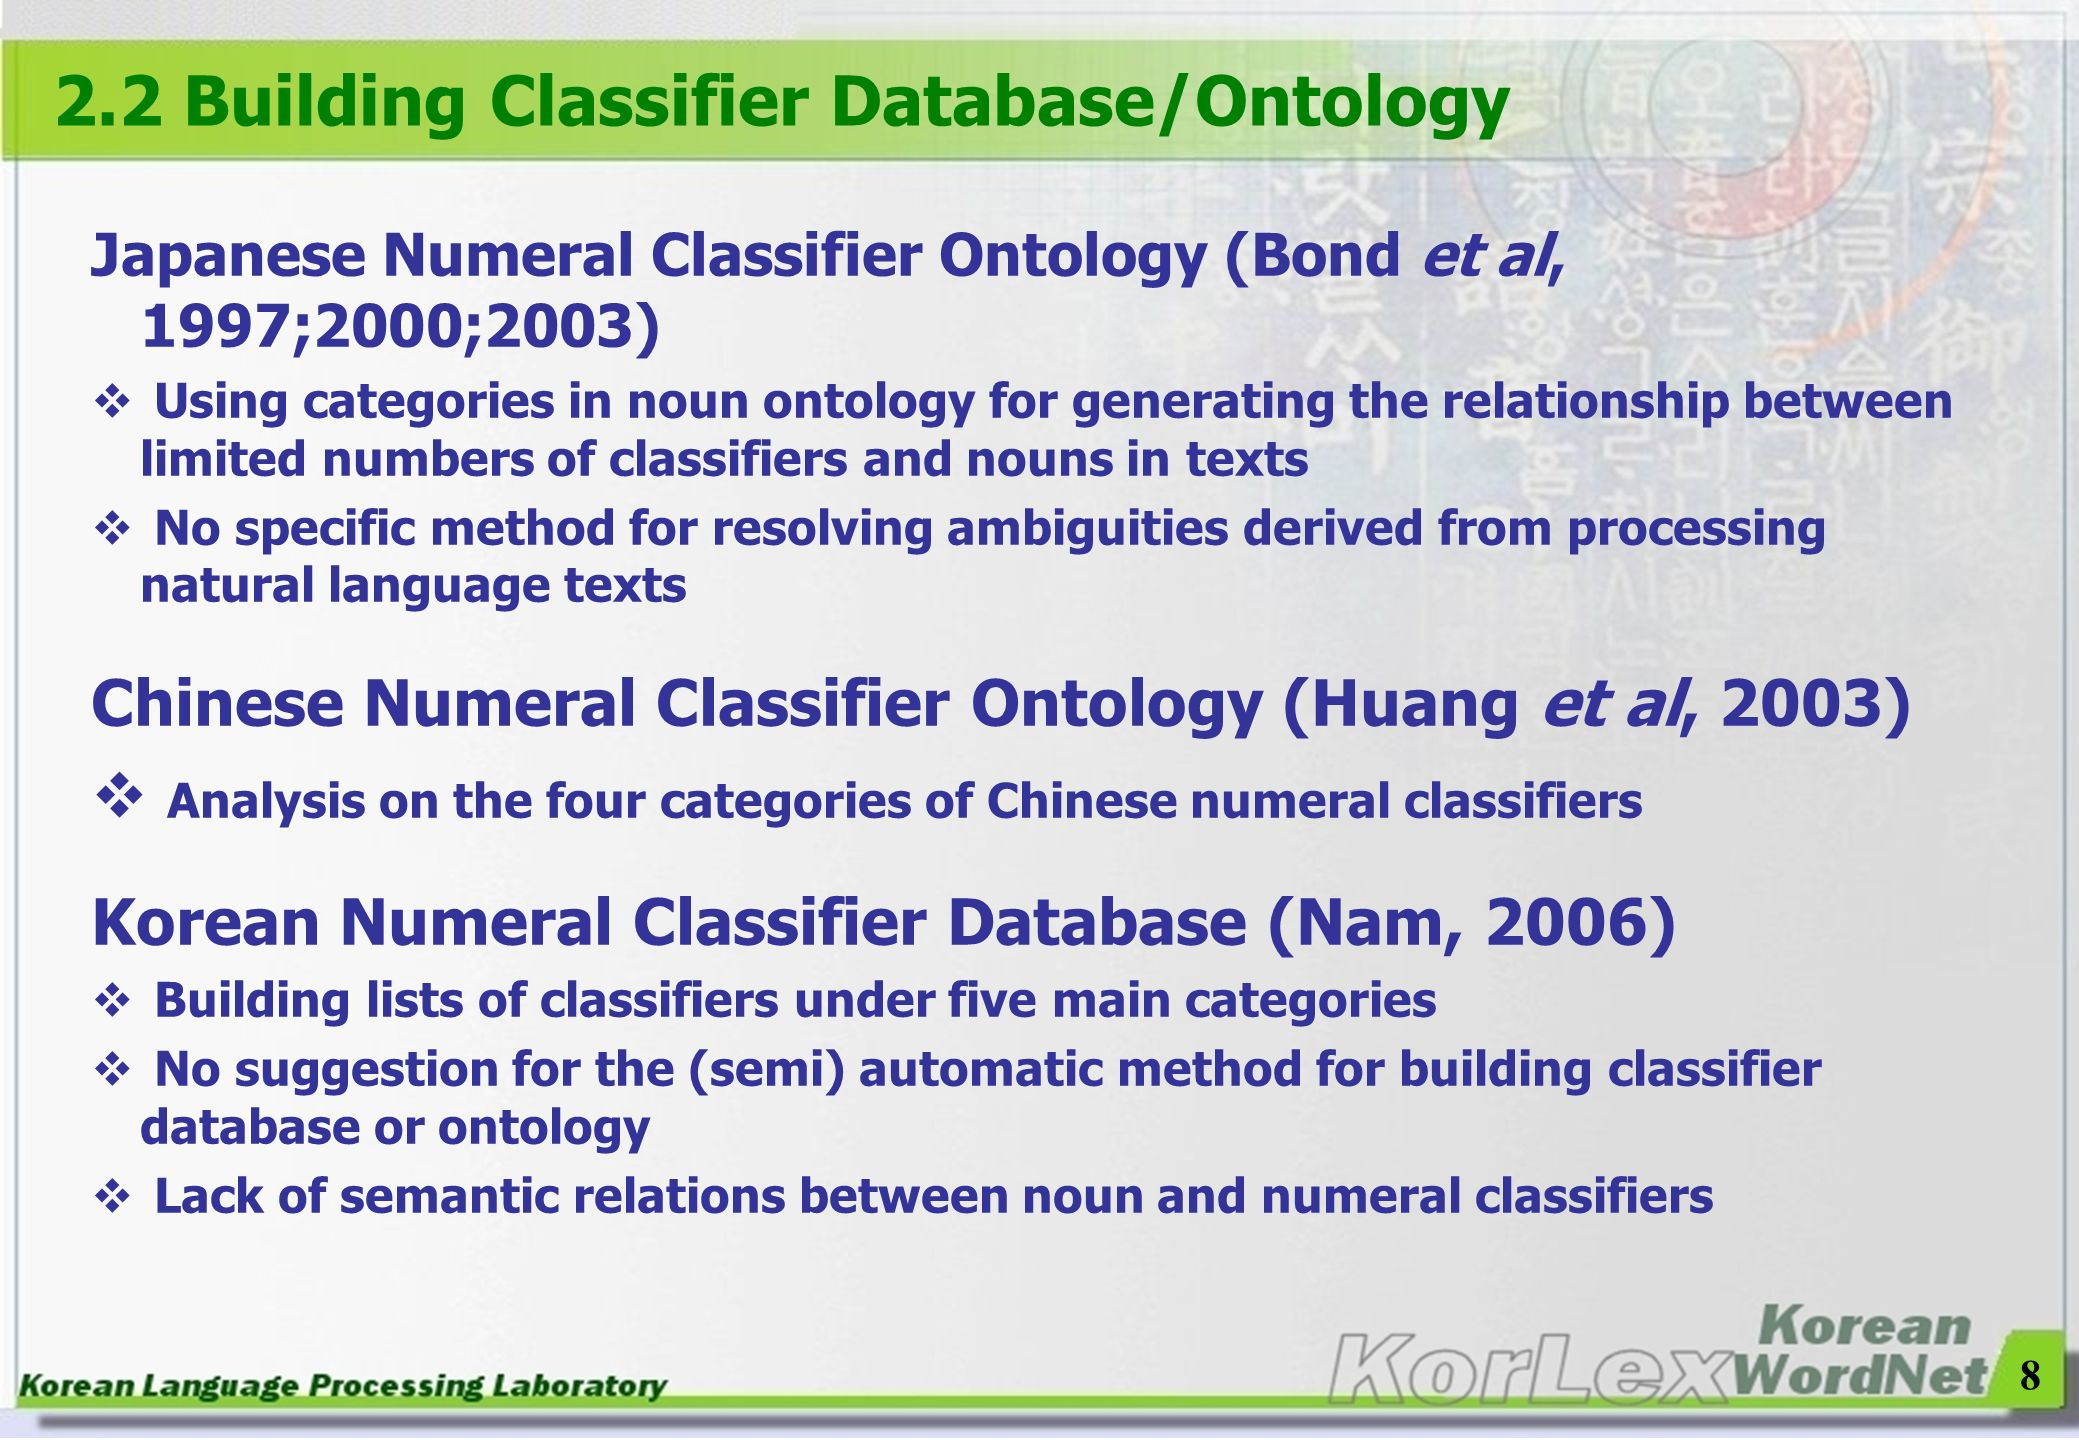 2.2 Building Classifier Database/Ontology